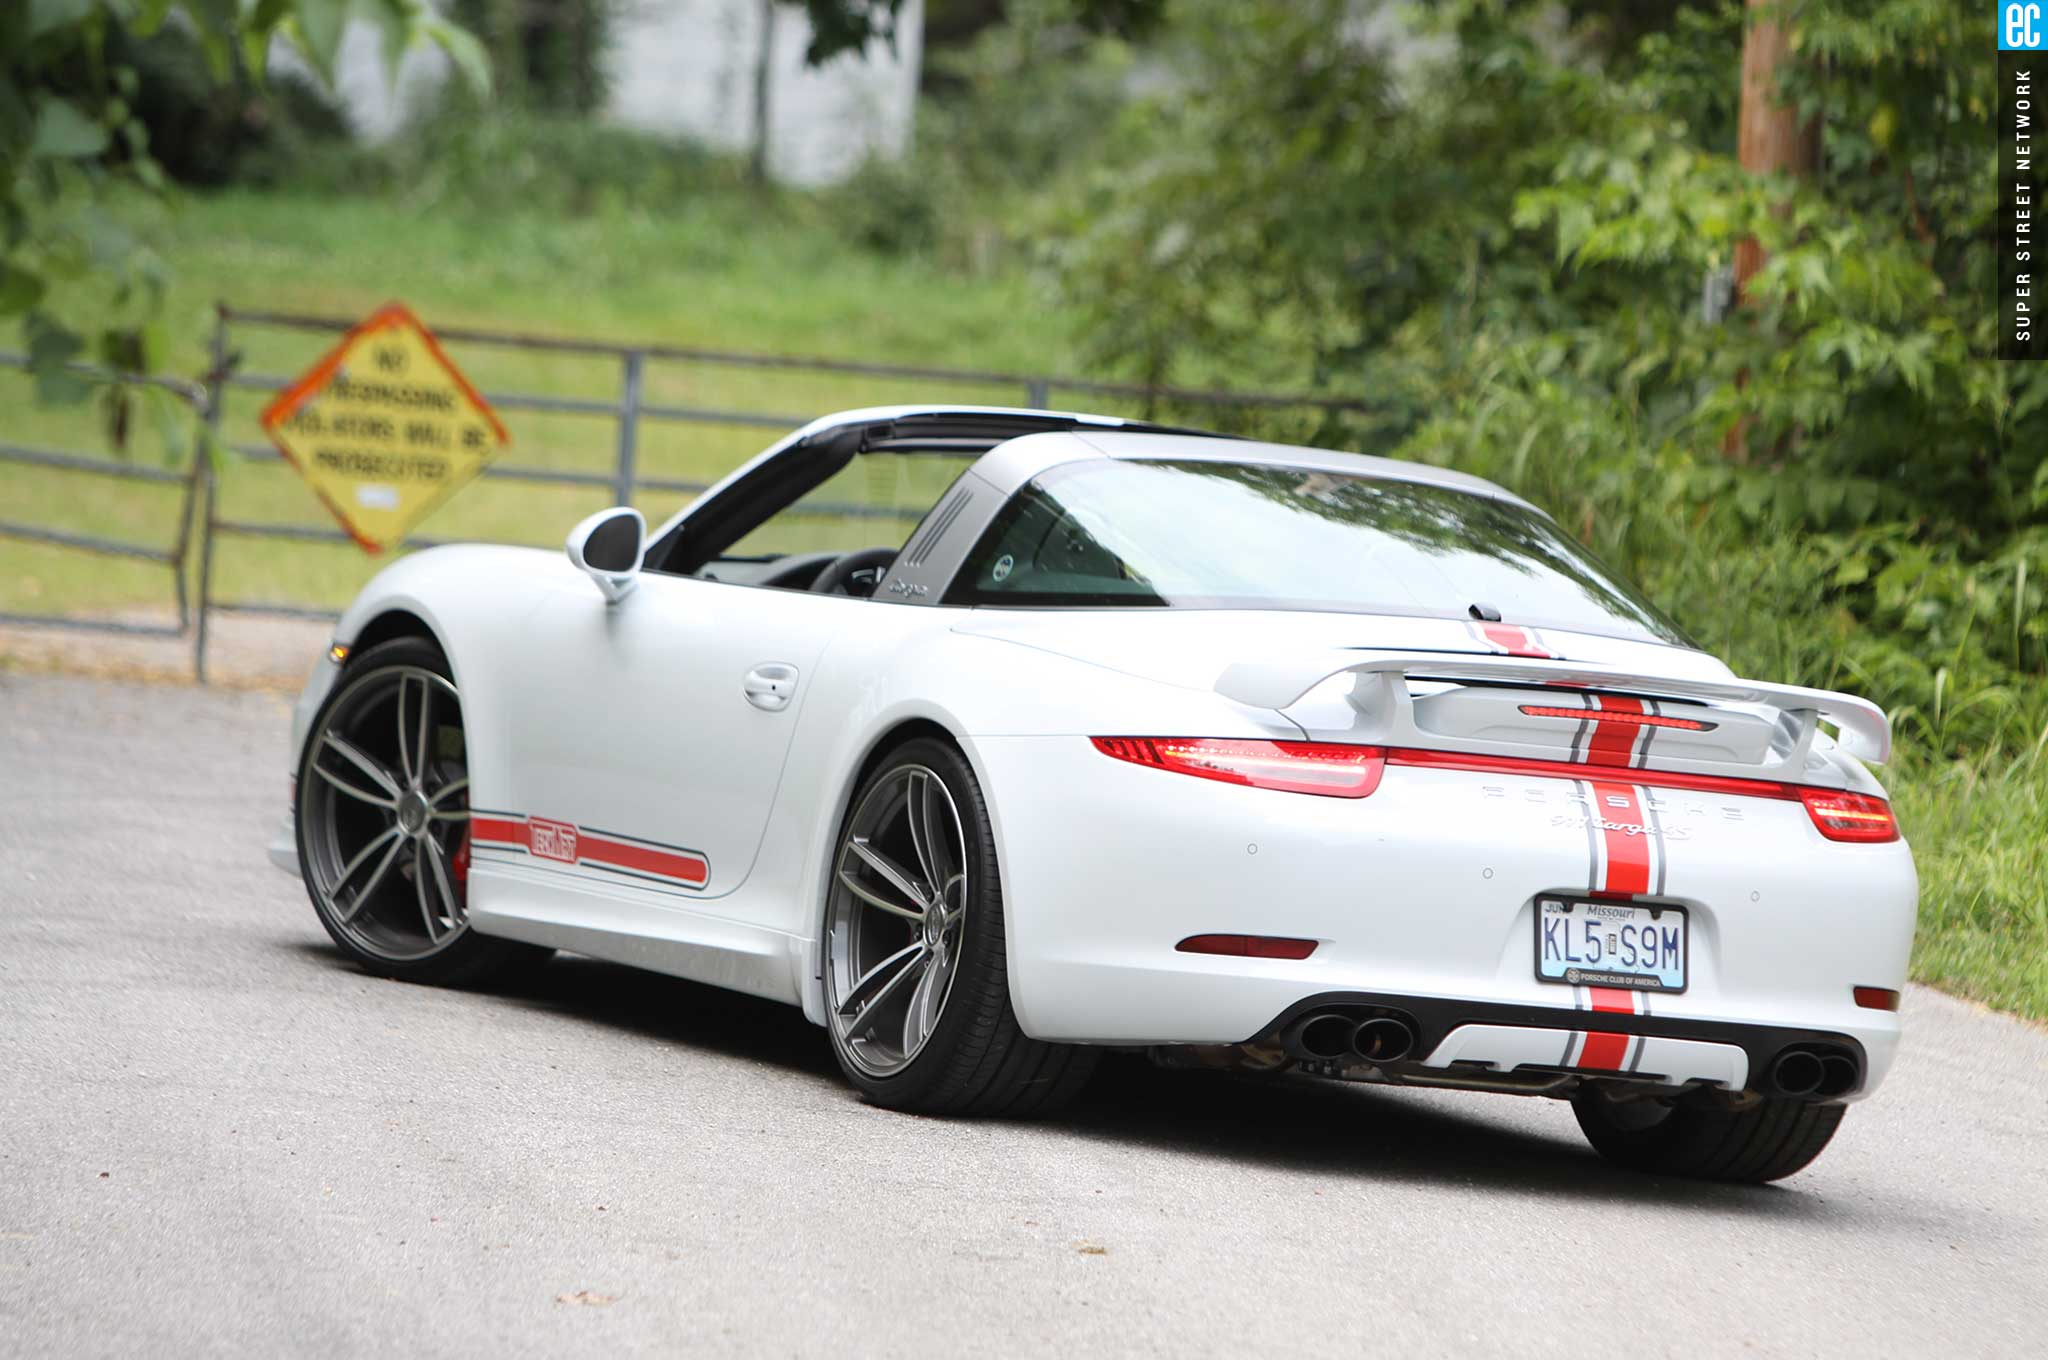 techart works its magic on the 2015 porsche 991 targa 4s